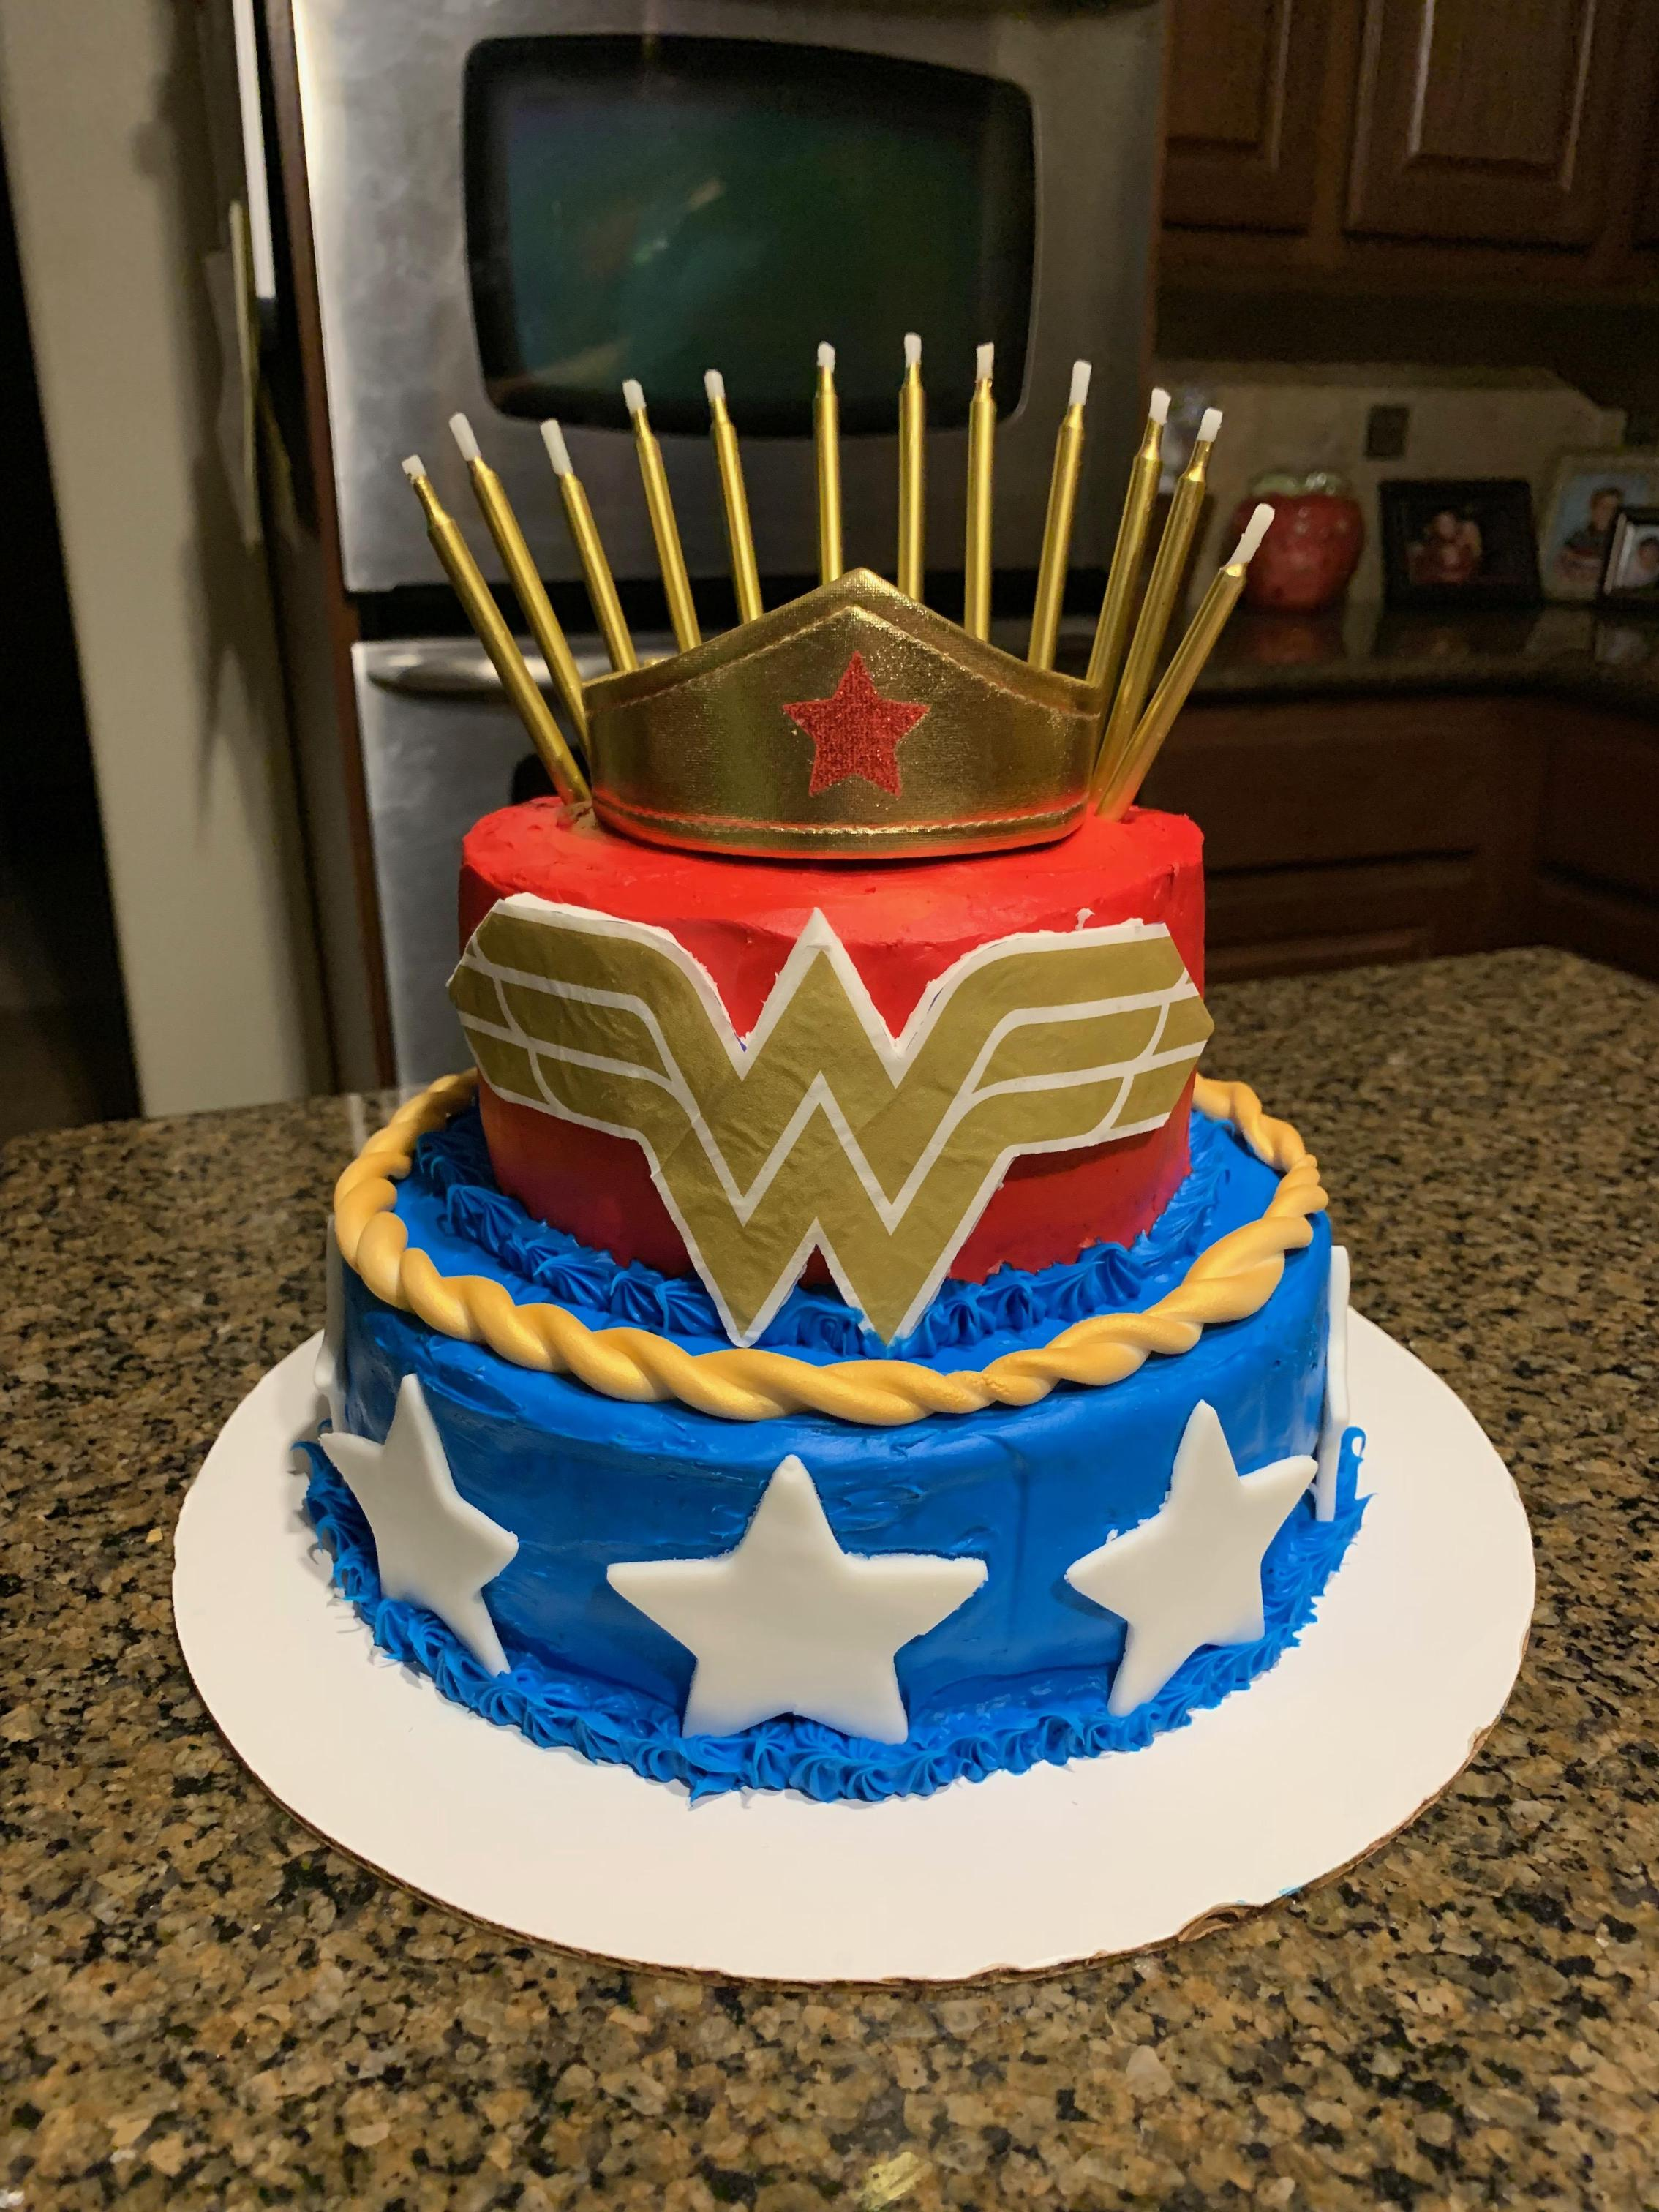 Loved my Wonder Woman birthday cake!  Mr. Apfel sure knows how to make us feel special with his birthday cake creations!